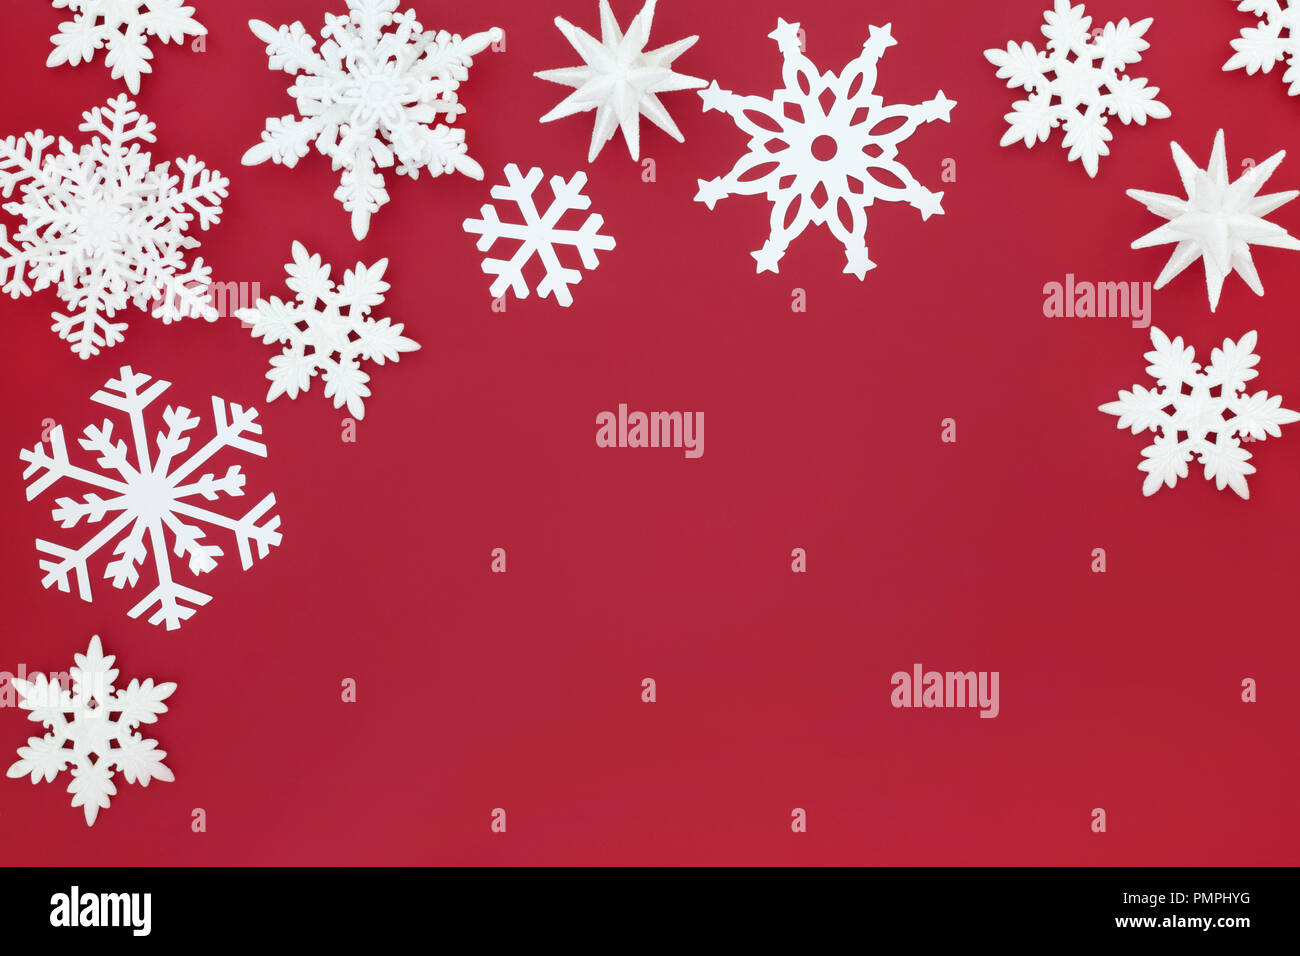 White Snowflake Bauble Decorations Forming A Christmas Background Border On Red Traditional Christmas Greeting Card For The Festive Holiday Season Stock Photo Alamy